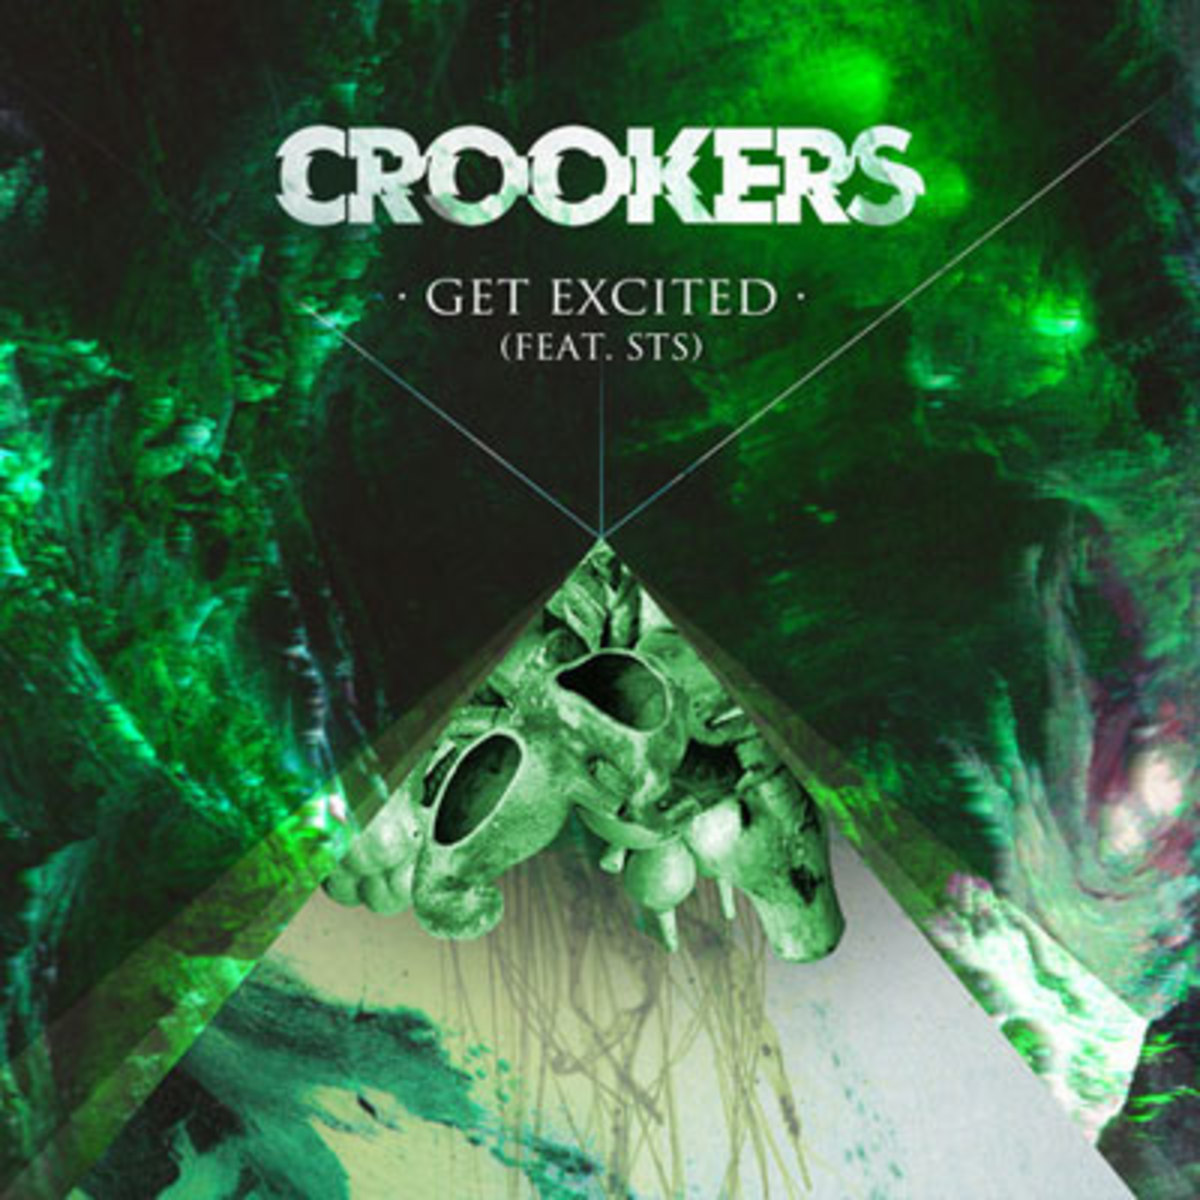 crookers-getexcited.jpg